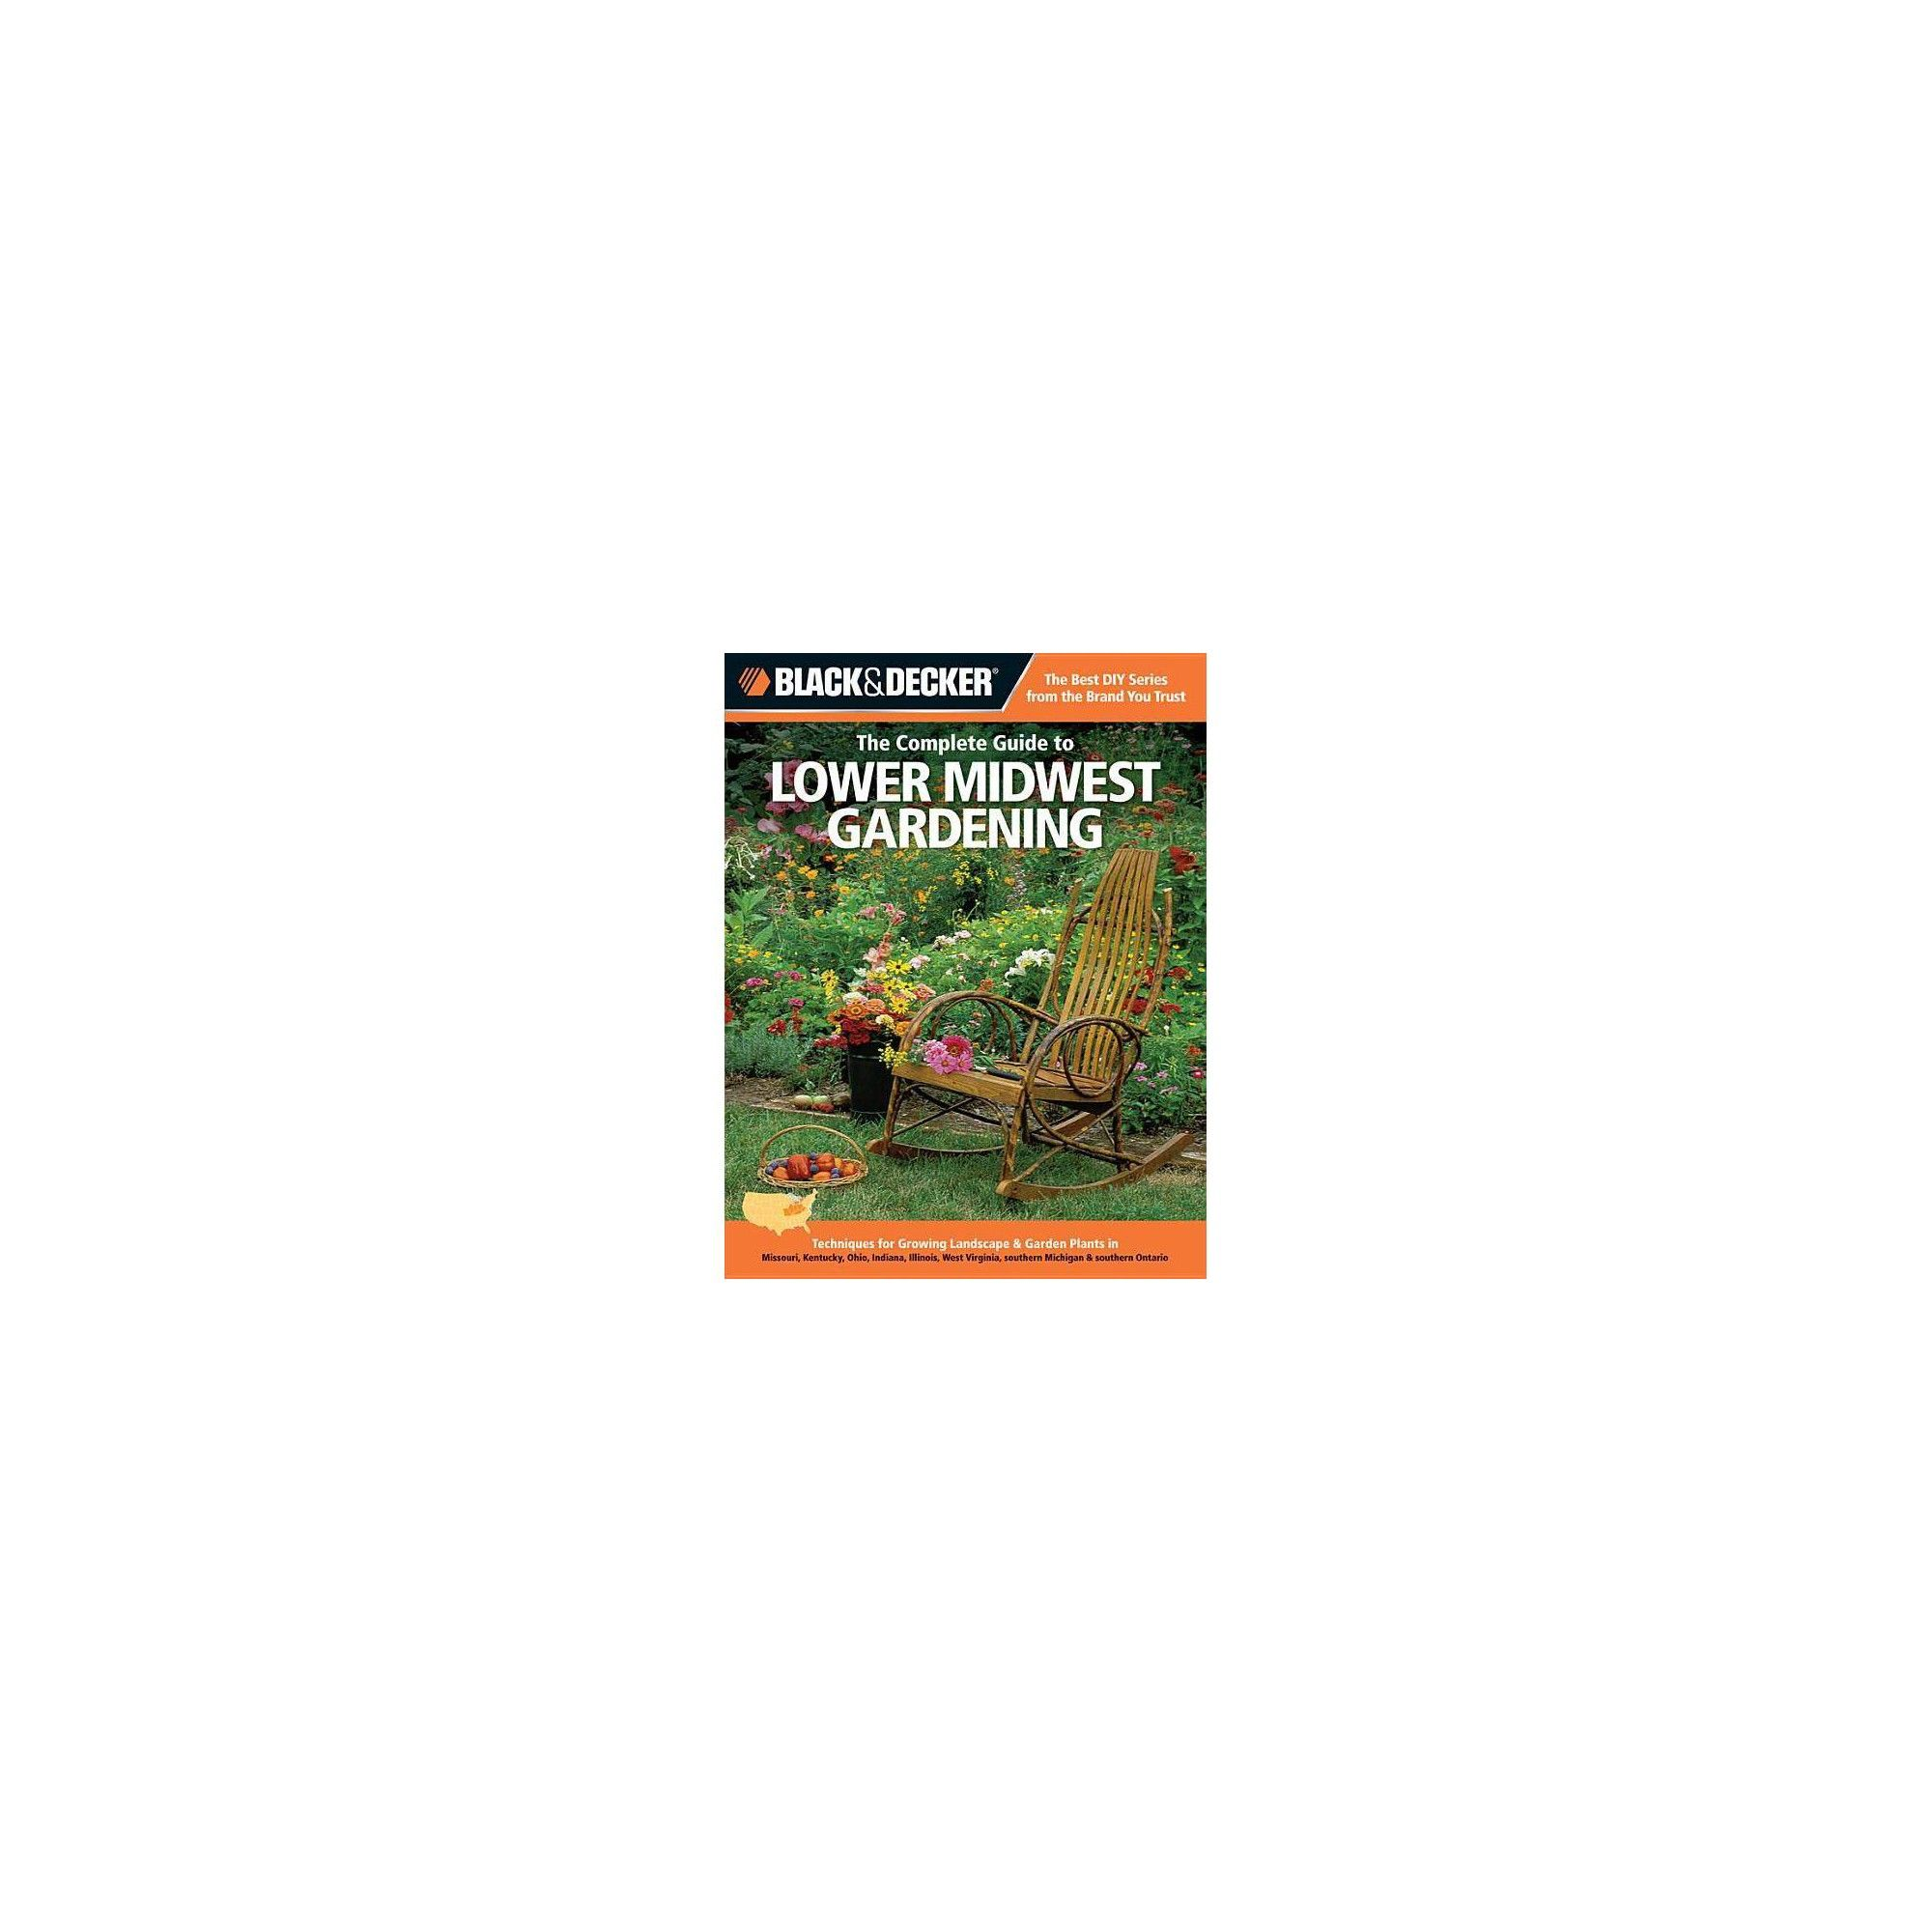 Indiana Kentucky Ohio West Virginia southern Michigan /& southern Ontario Black /& Decker The Complete Guide to Lower Midwest Gardening: Techniques for Growing Landscape /& Garden Plants in Missouri Illinois